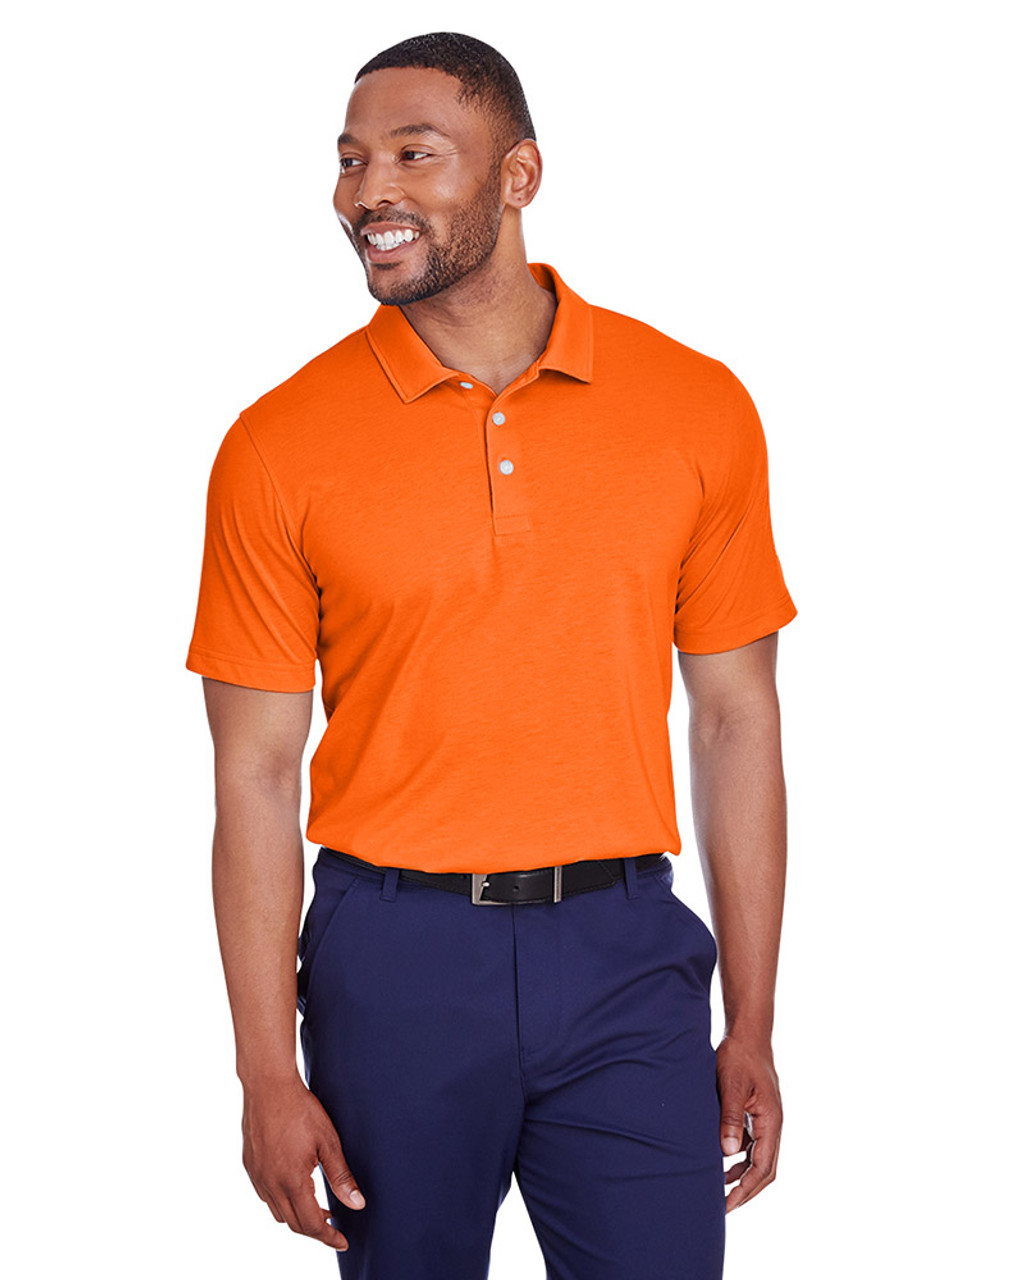 Vibrant Orange - 596920 Puma Golf Men's Fusion Polo | Blankclothing.ca